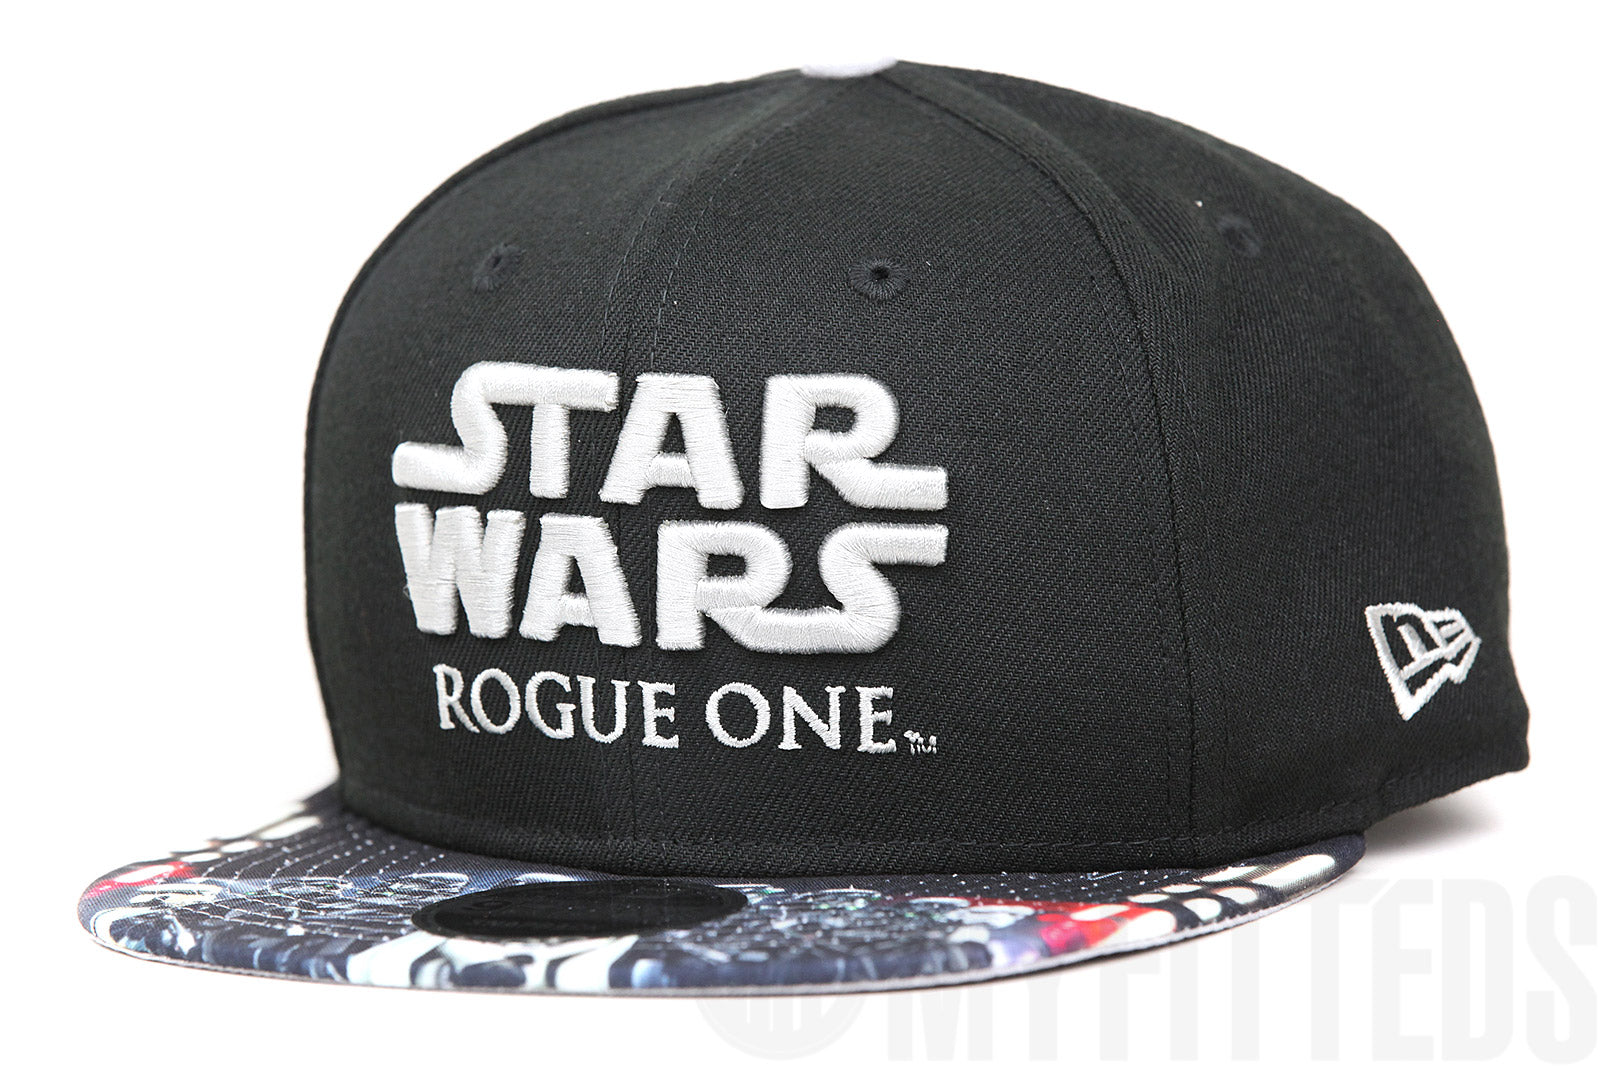 promo code 99e9d f435c ... discount star wars rogue one a star wars story villain new era 9fifty snapback  hat 423c6